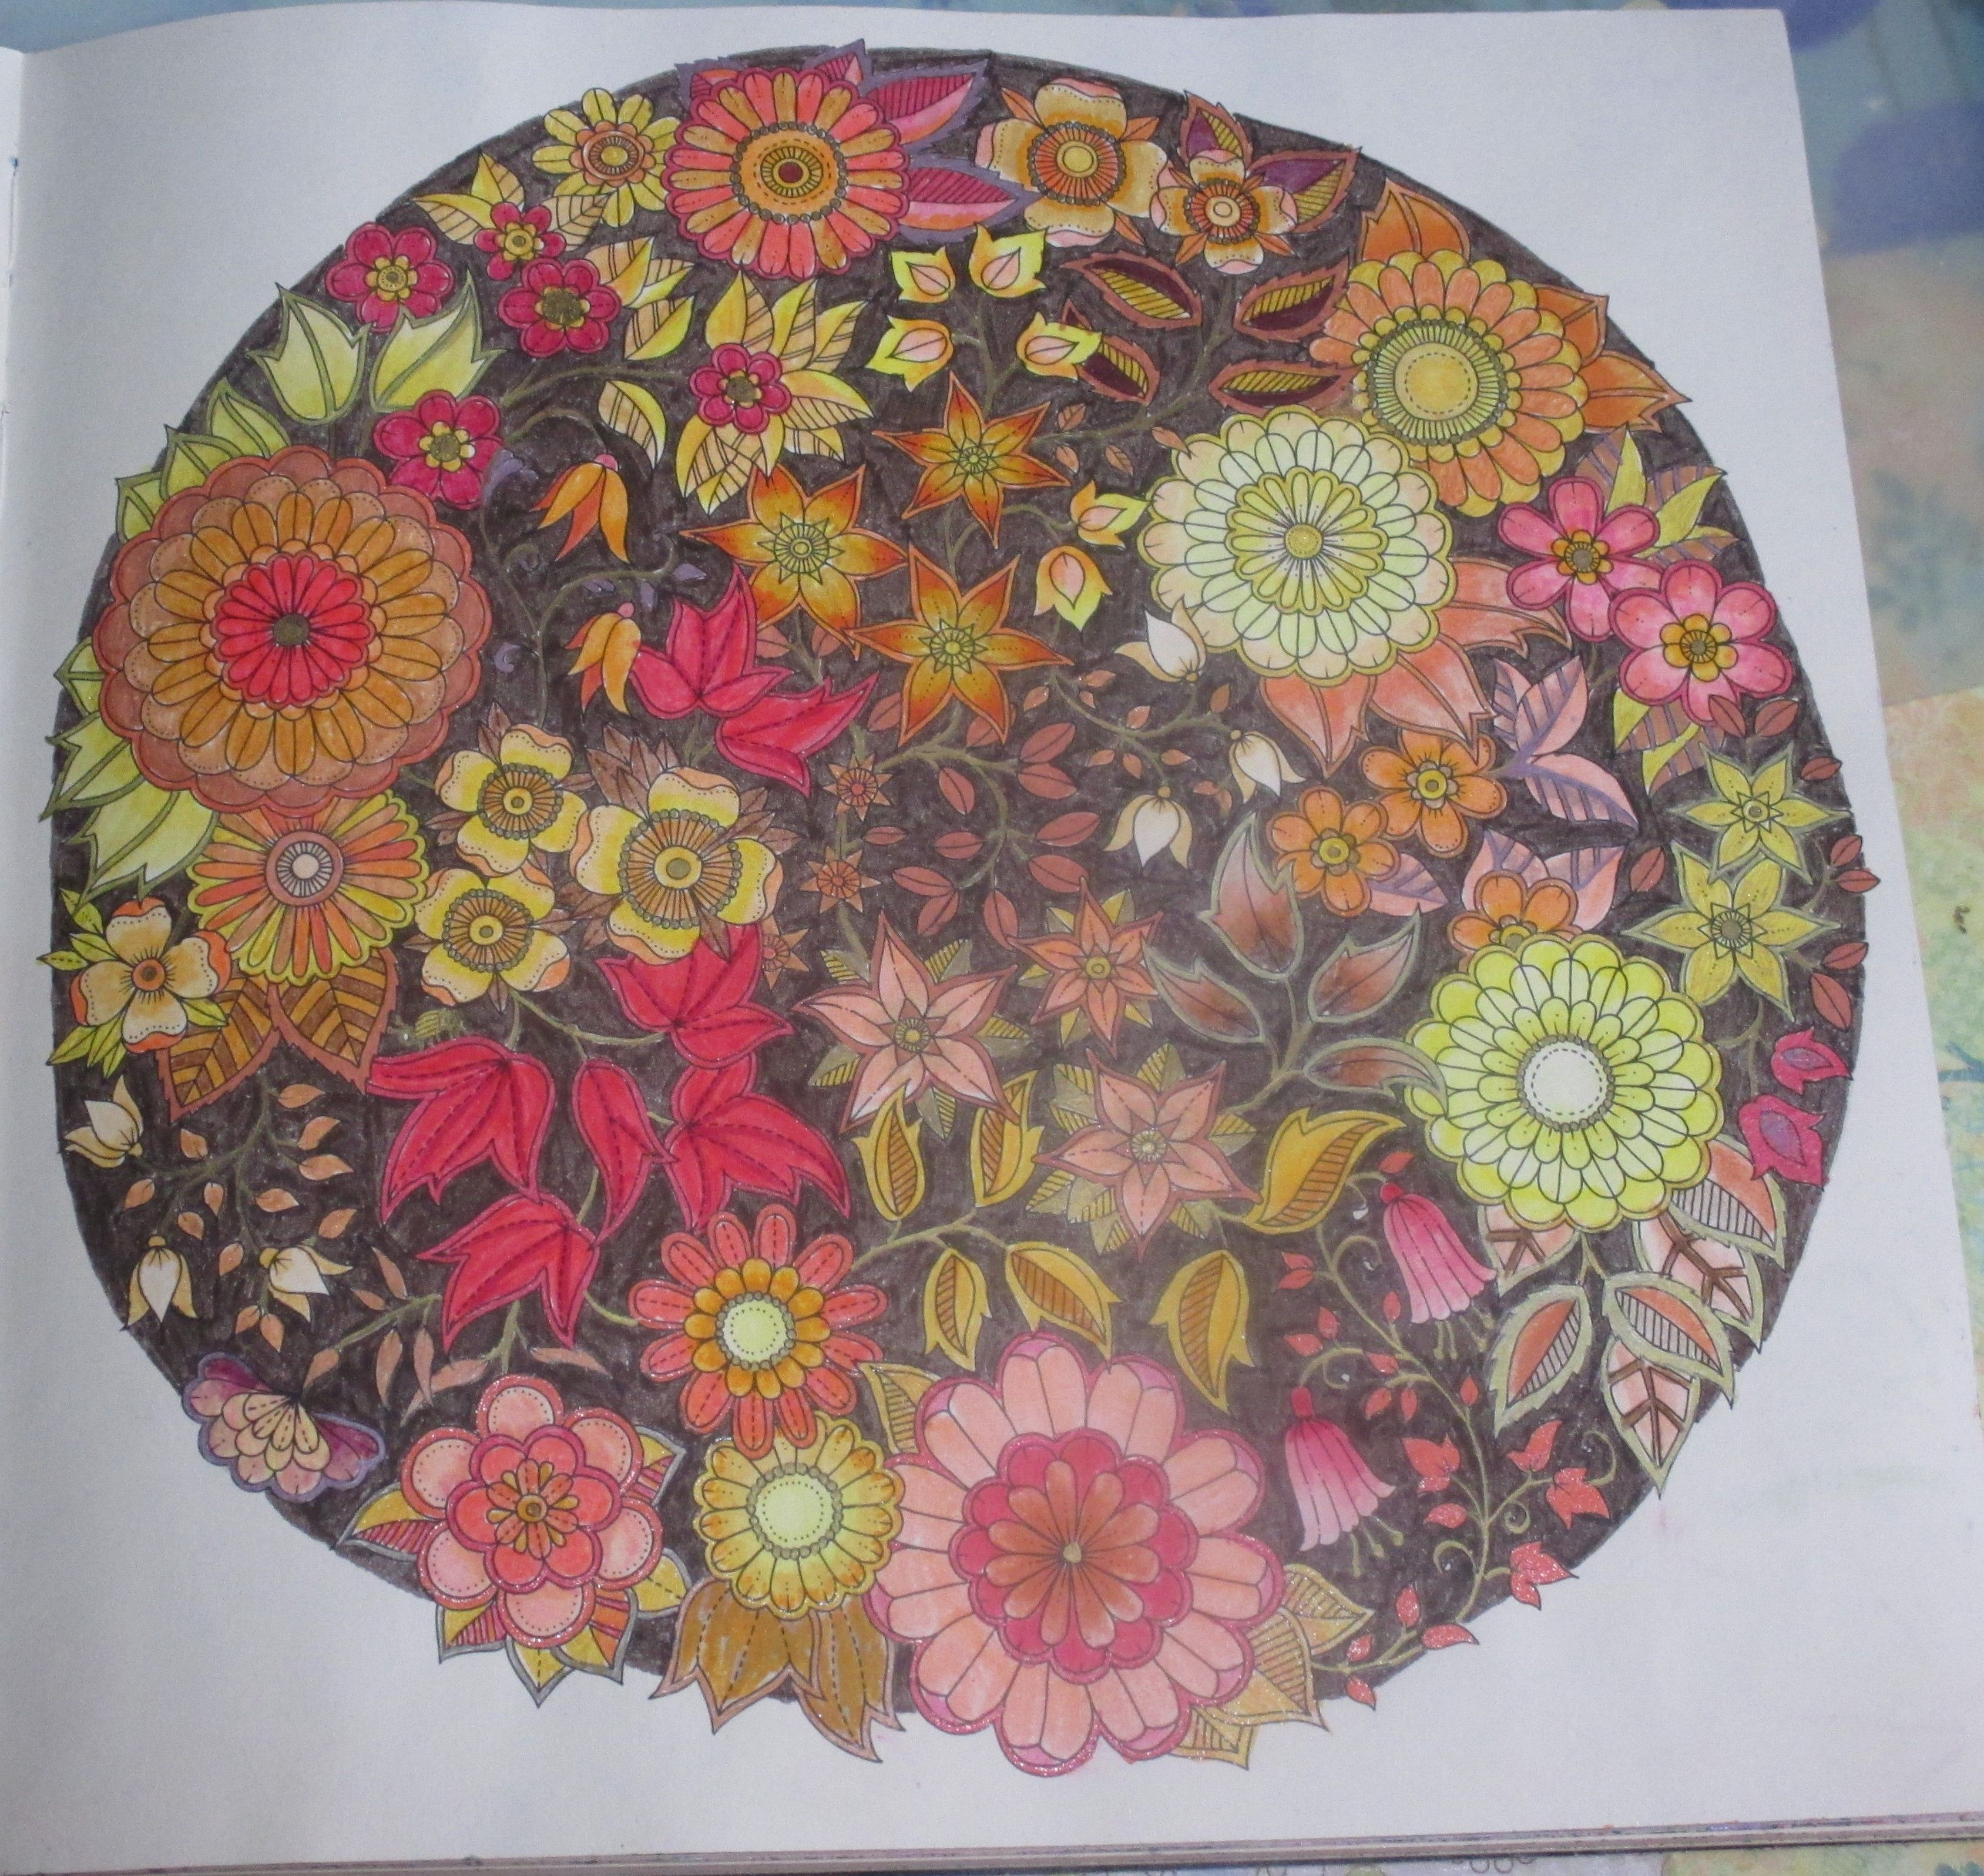 The secret garden coloring book target - Johanna Basford Secret Garden Colored In Tombow Markers By Karen Gory